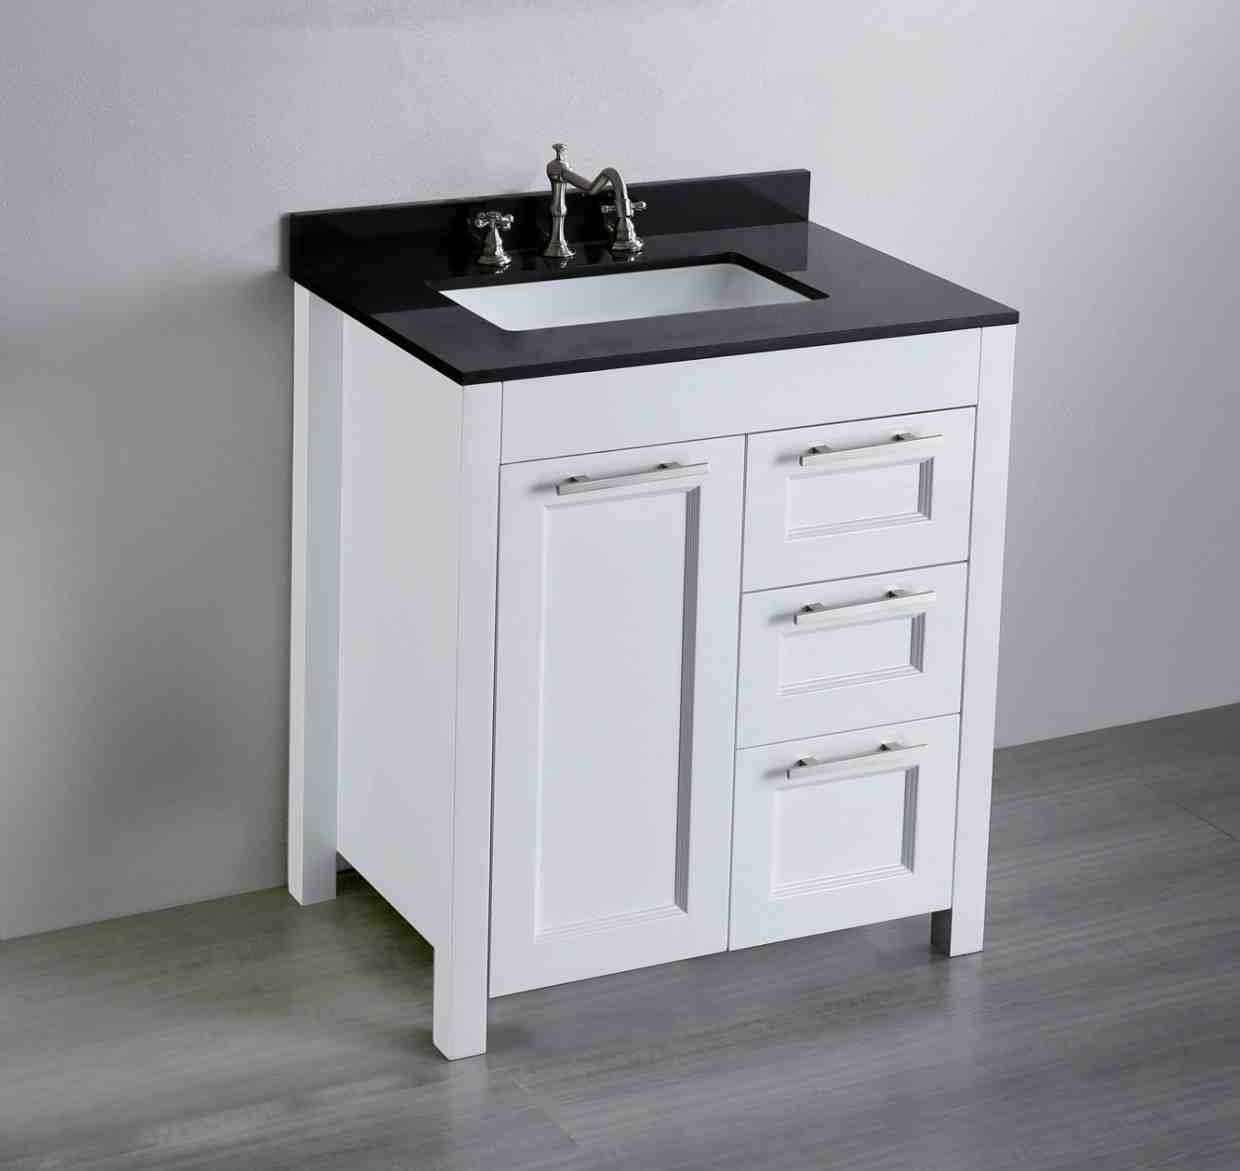 18 Inch Bathroom Sink Cabinet In Md – Deebonk